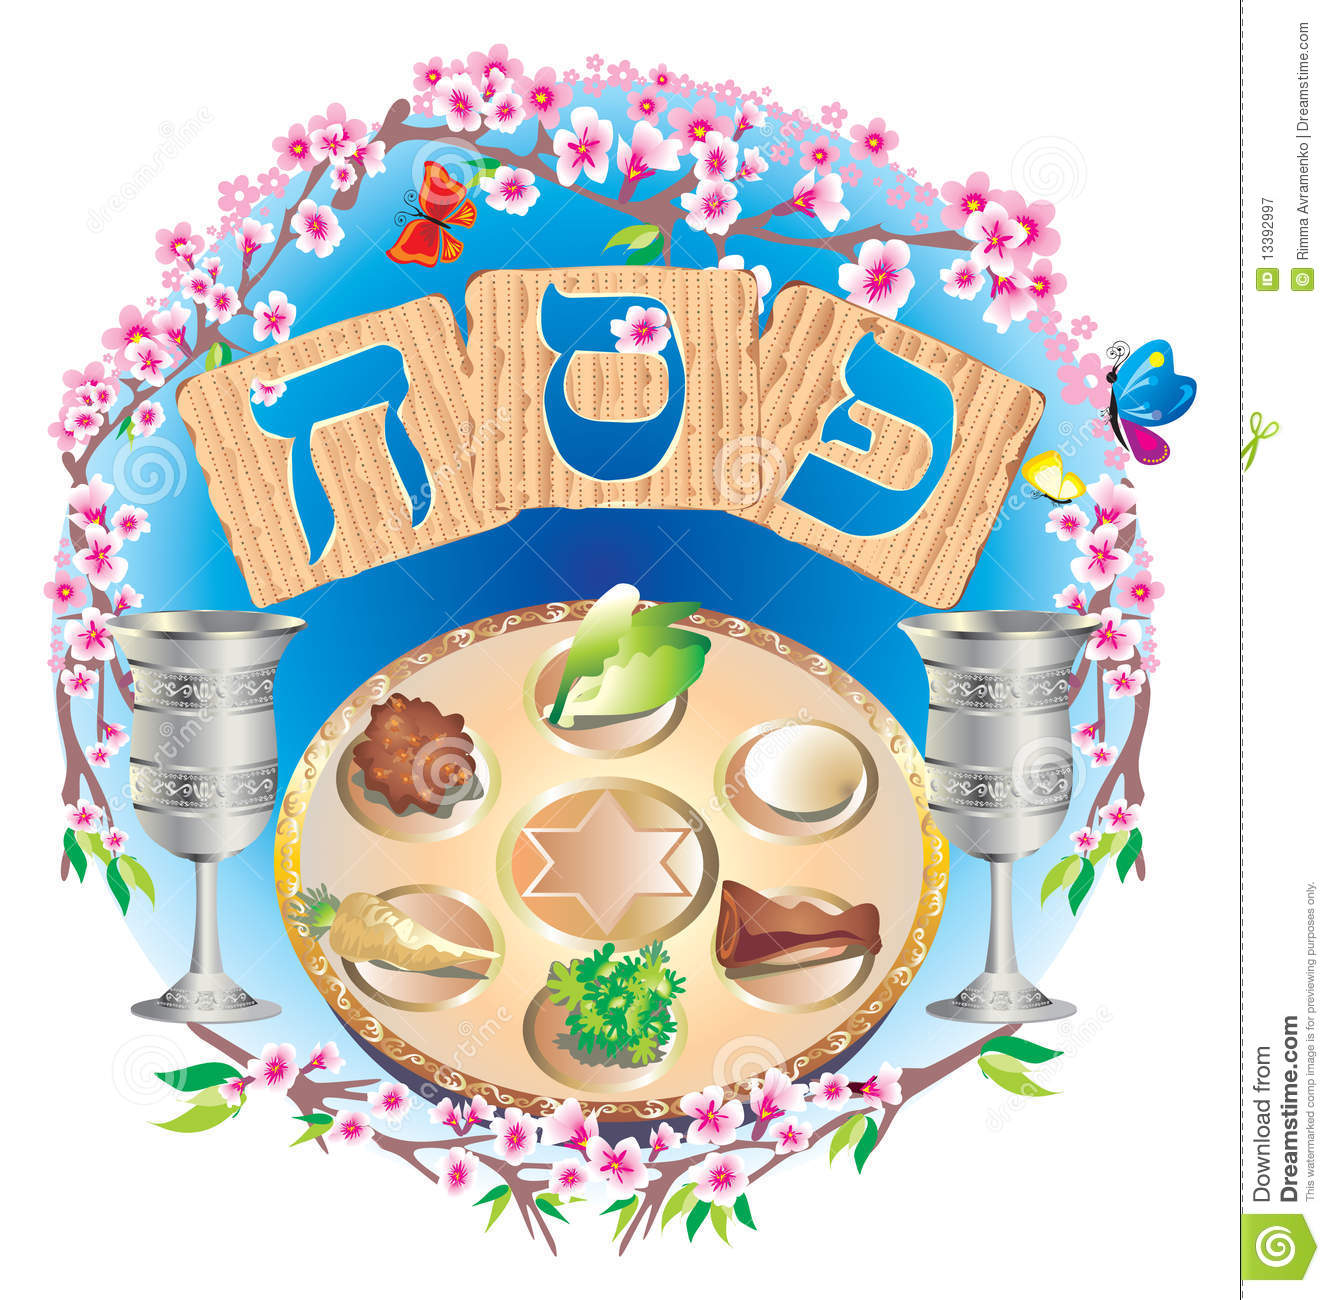 Passover Royalty Free Stock Photography - Image: 13392997